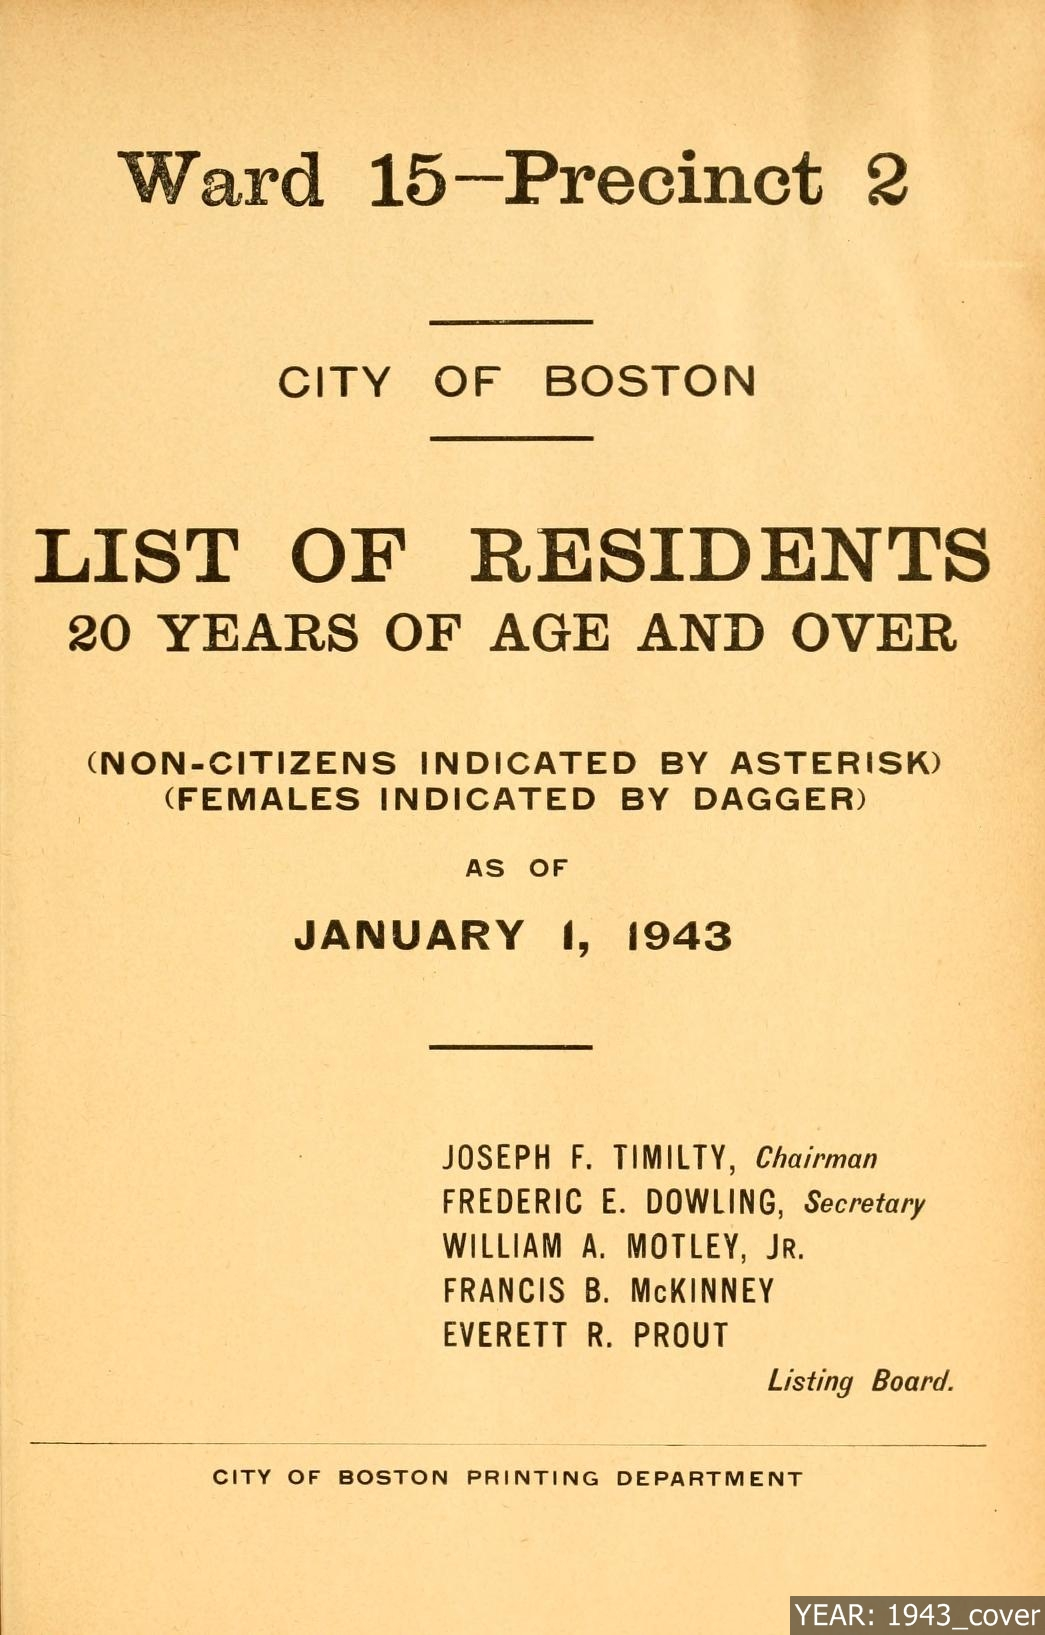 1943_cover